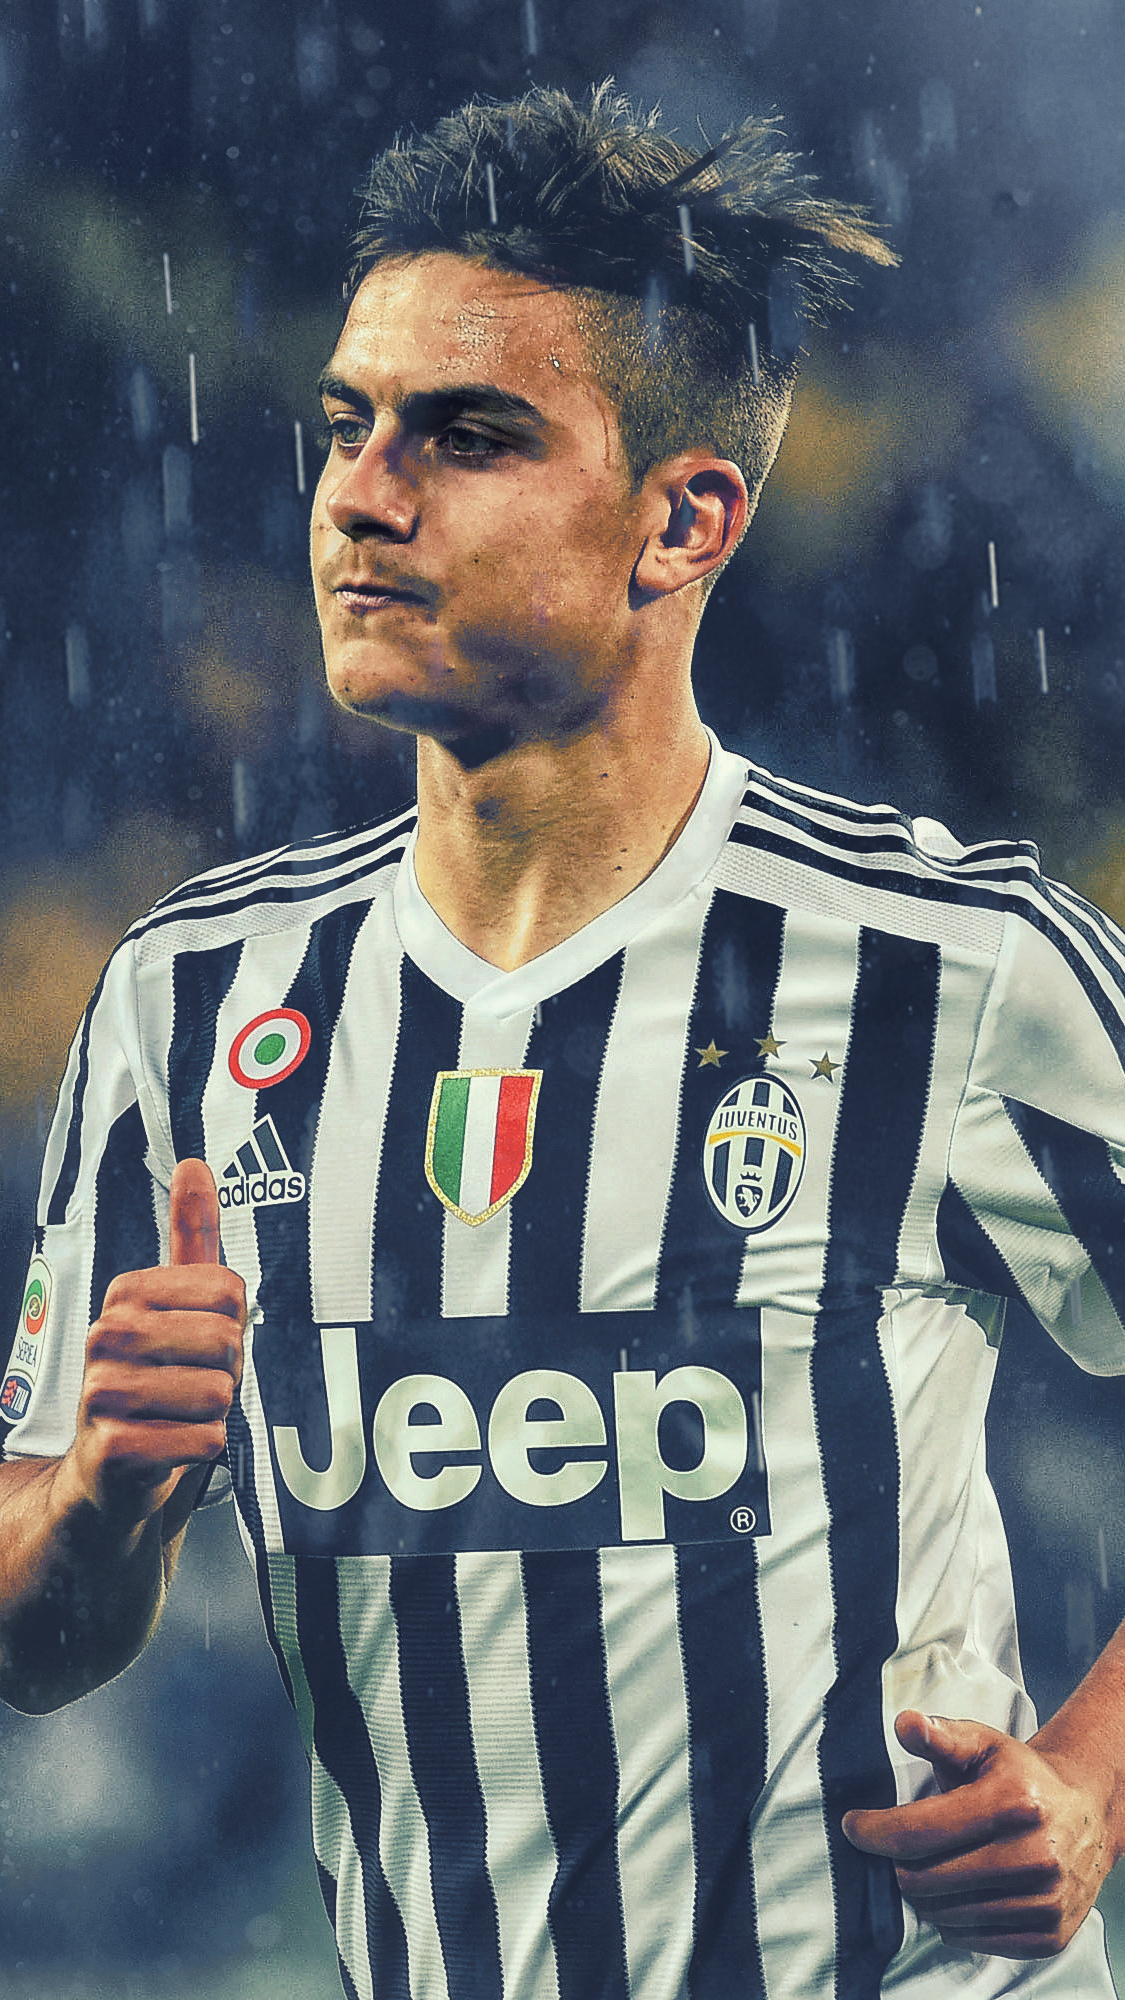 Paulo Dybala Mobile Wallpaper HD by Kerimov23 on DeviantArt